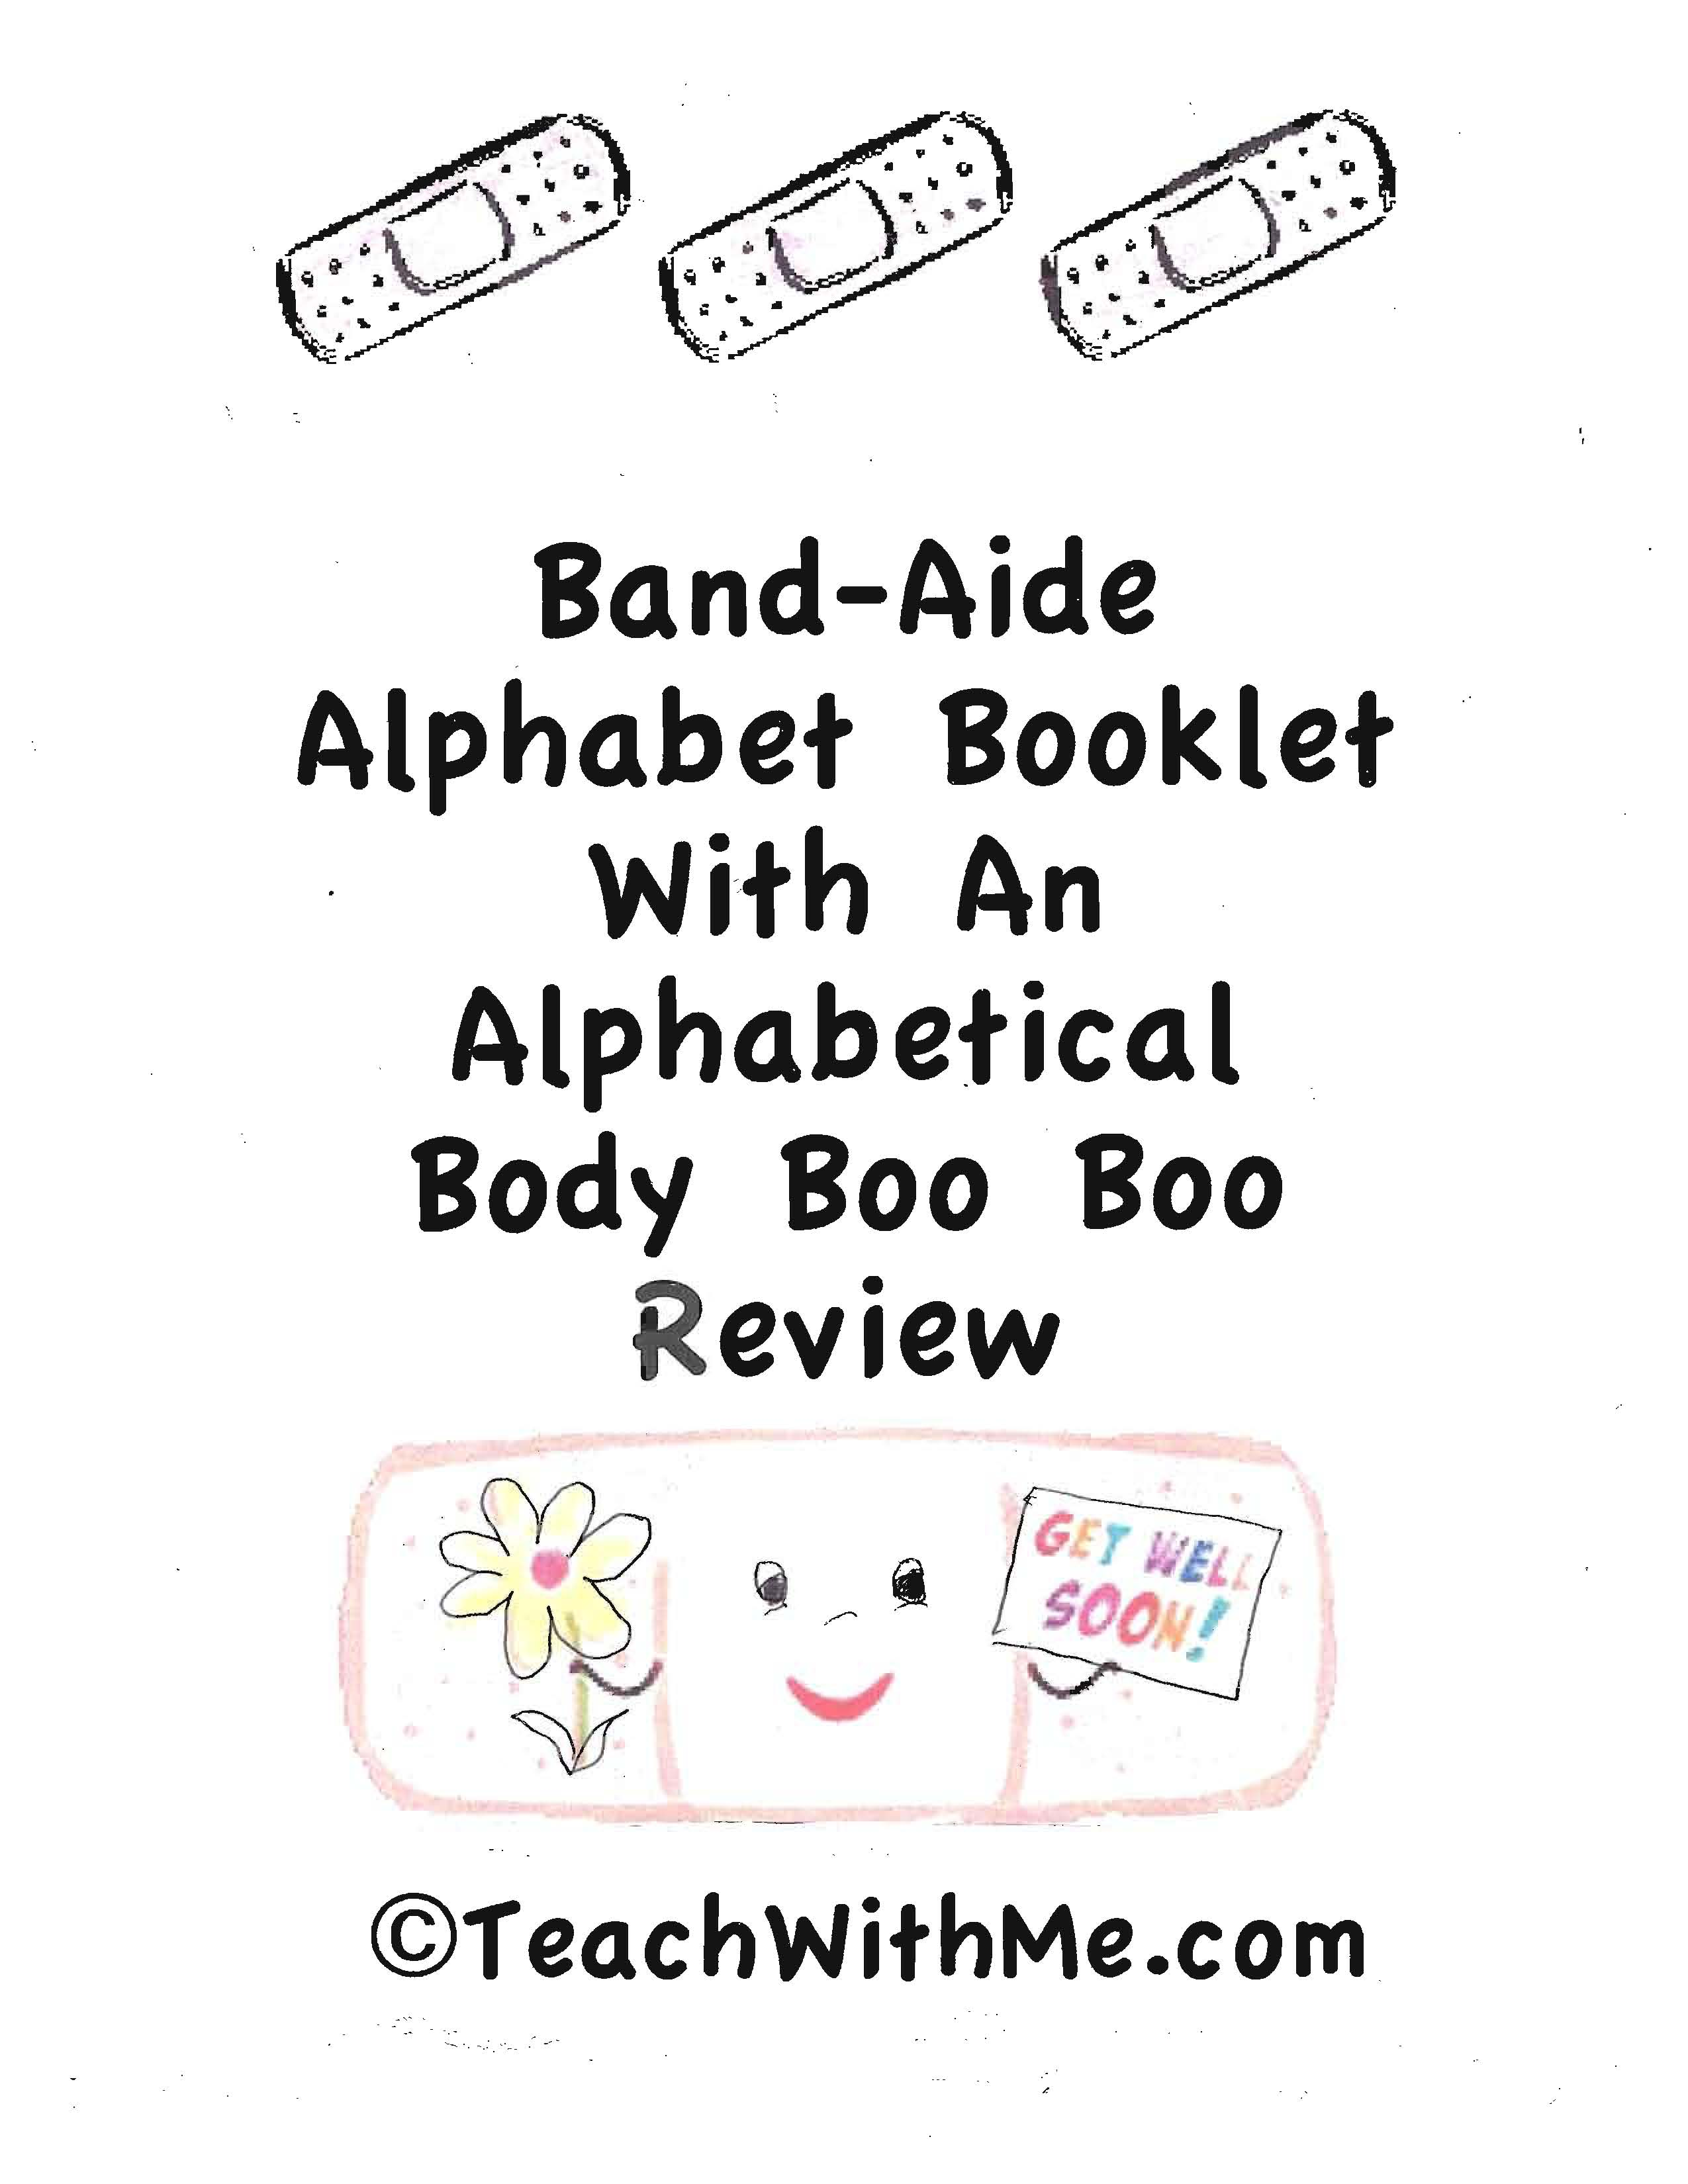 end of the year activities, end of the year ideas, alphabet booklet, alphabet ideas, alphabet lessons, alphabet booklet, owie booklet, boo boo booklet, band-aide booklet, band-aide alphabet, ideas for when a child gets hurt, letter flashcards, alphabet flashcards, parts of the body booklet, parts of the body booklet, parts of the body flashcards, parts of the body songs, parts of the body games, parts of the body lessons, parts of the body activities, boo boo book, accident report form, letter home to parents when a child gets hurt on the playground, letter home to parents when a child gets hurt in school, boo boo report,